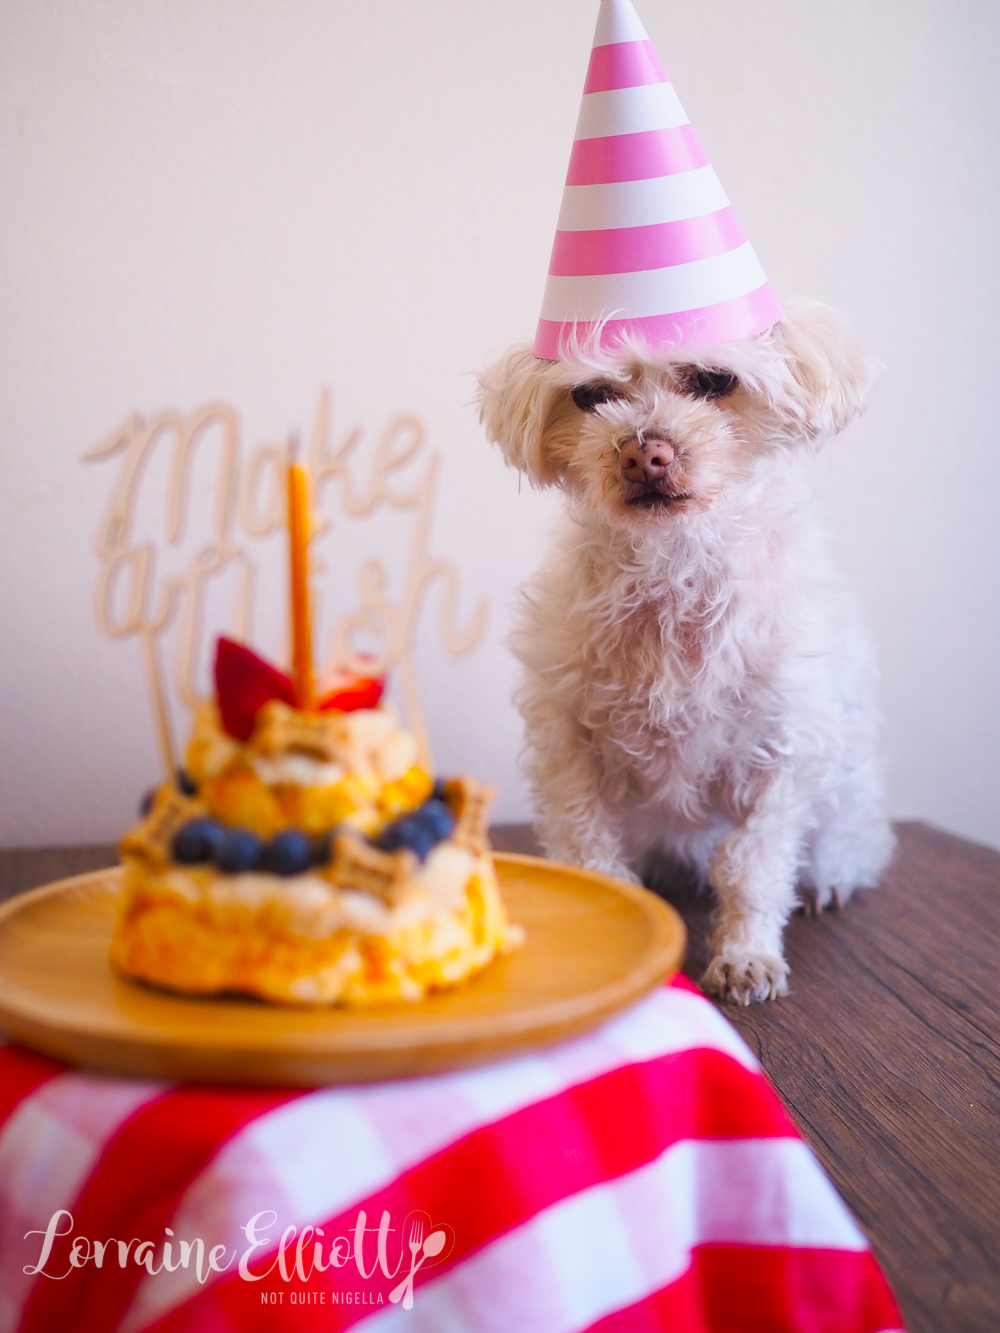 Image result for cake doggy